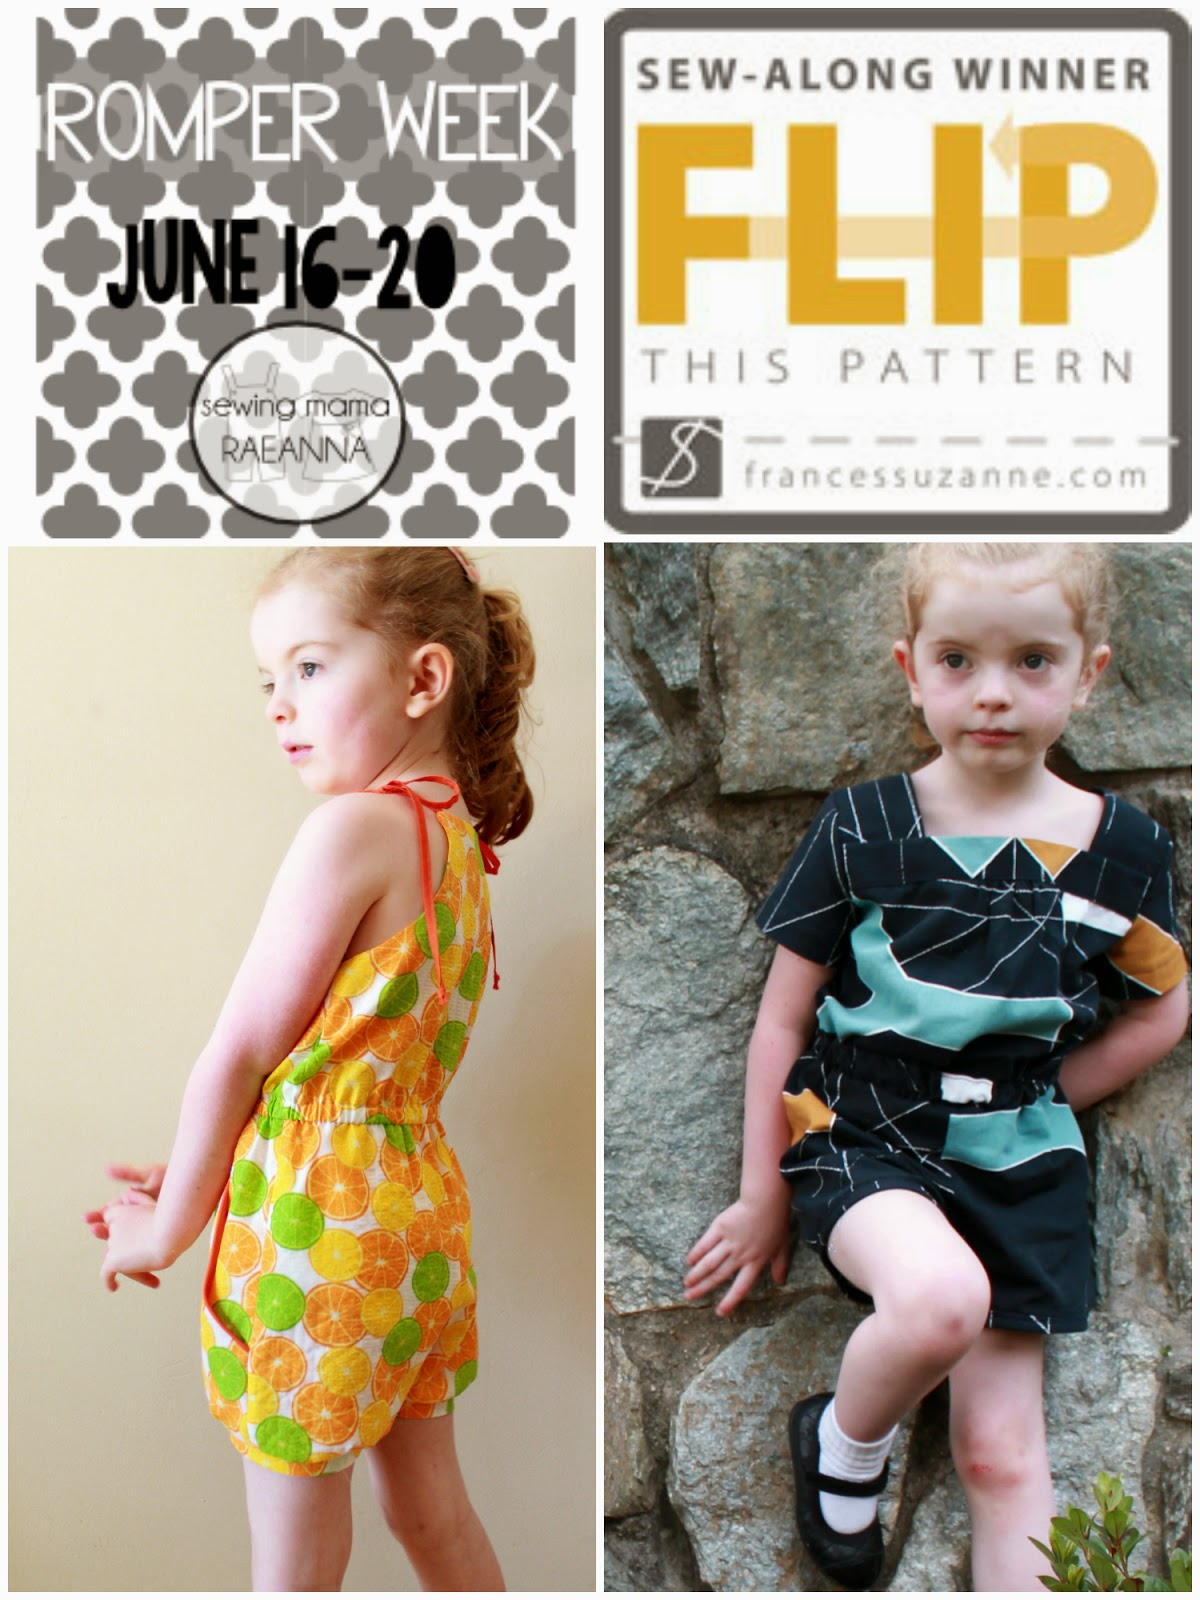 Summer Sewing 2014: Rompers | The Inspired Wren